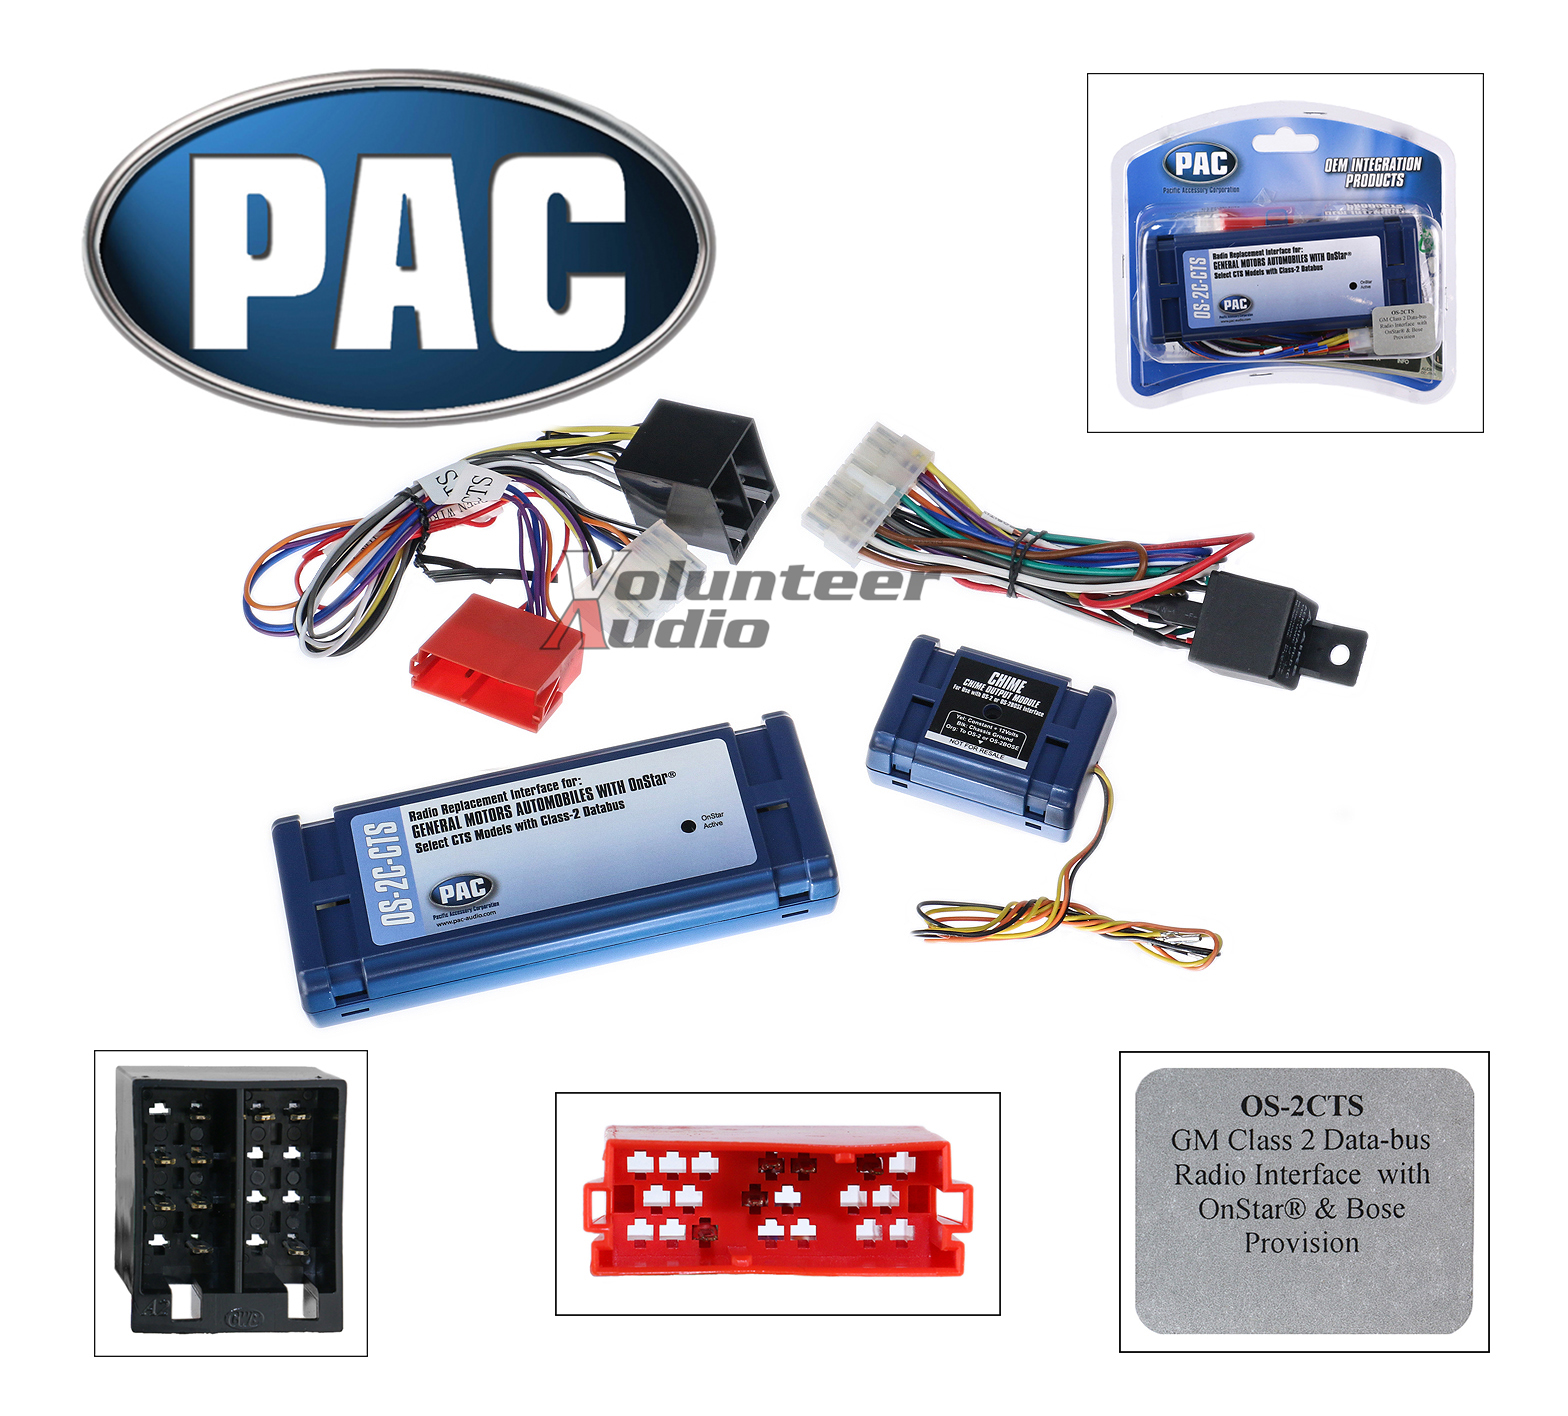 Pac Os 2c Cts Onstar Radio Replacement Wiring Interface Harness Oem Links